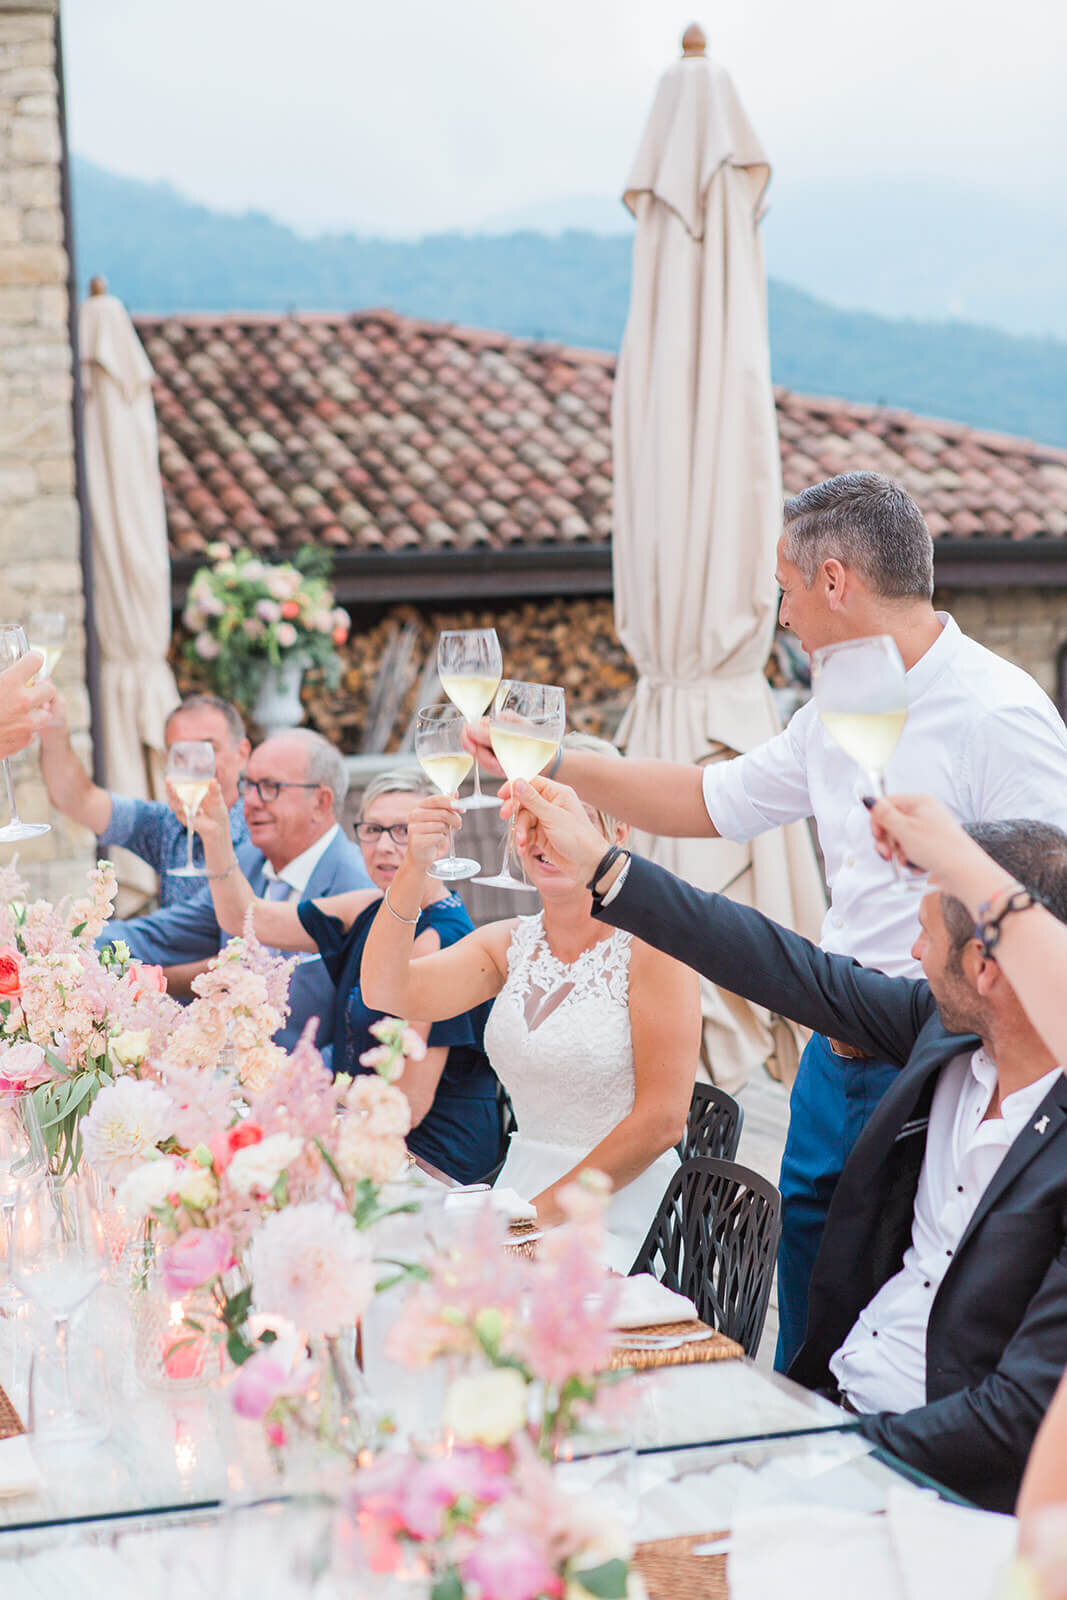 Wedding K&D - Lago d'Iseo - Italy 2018 48